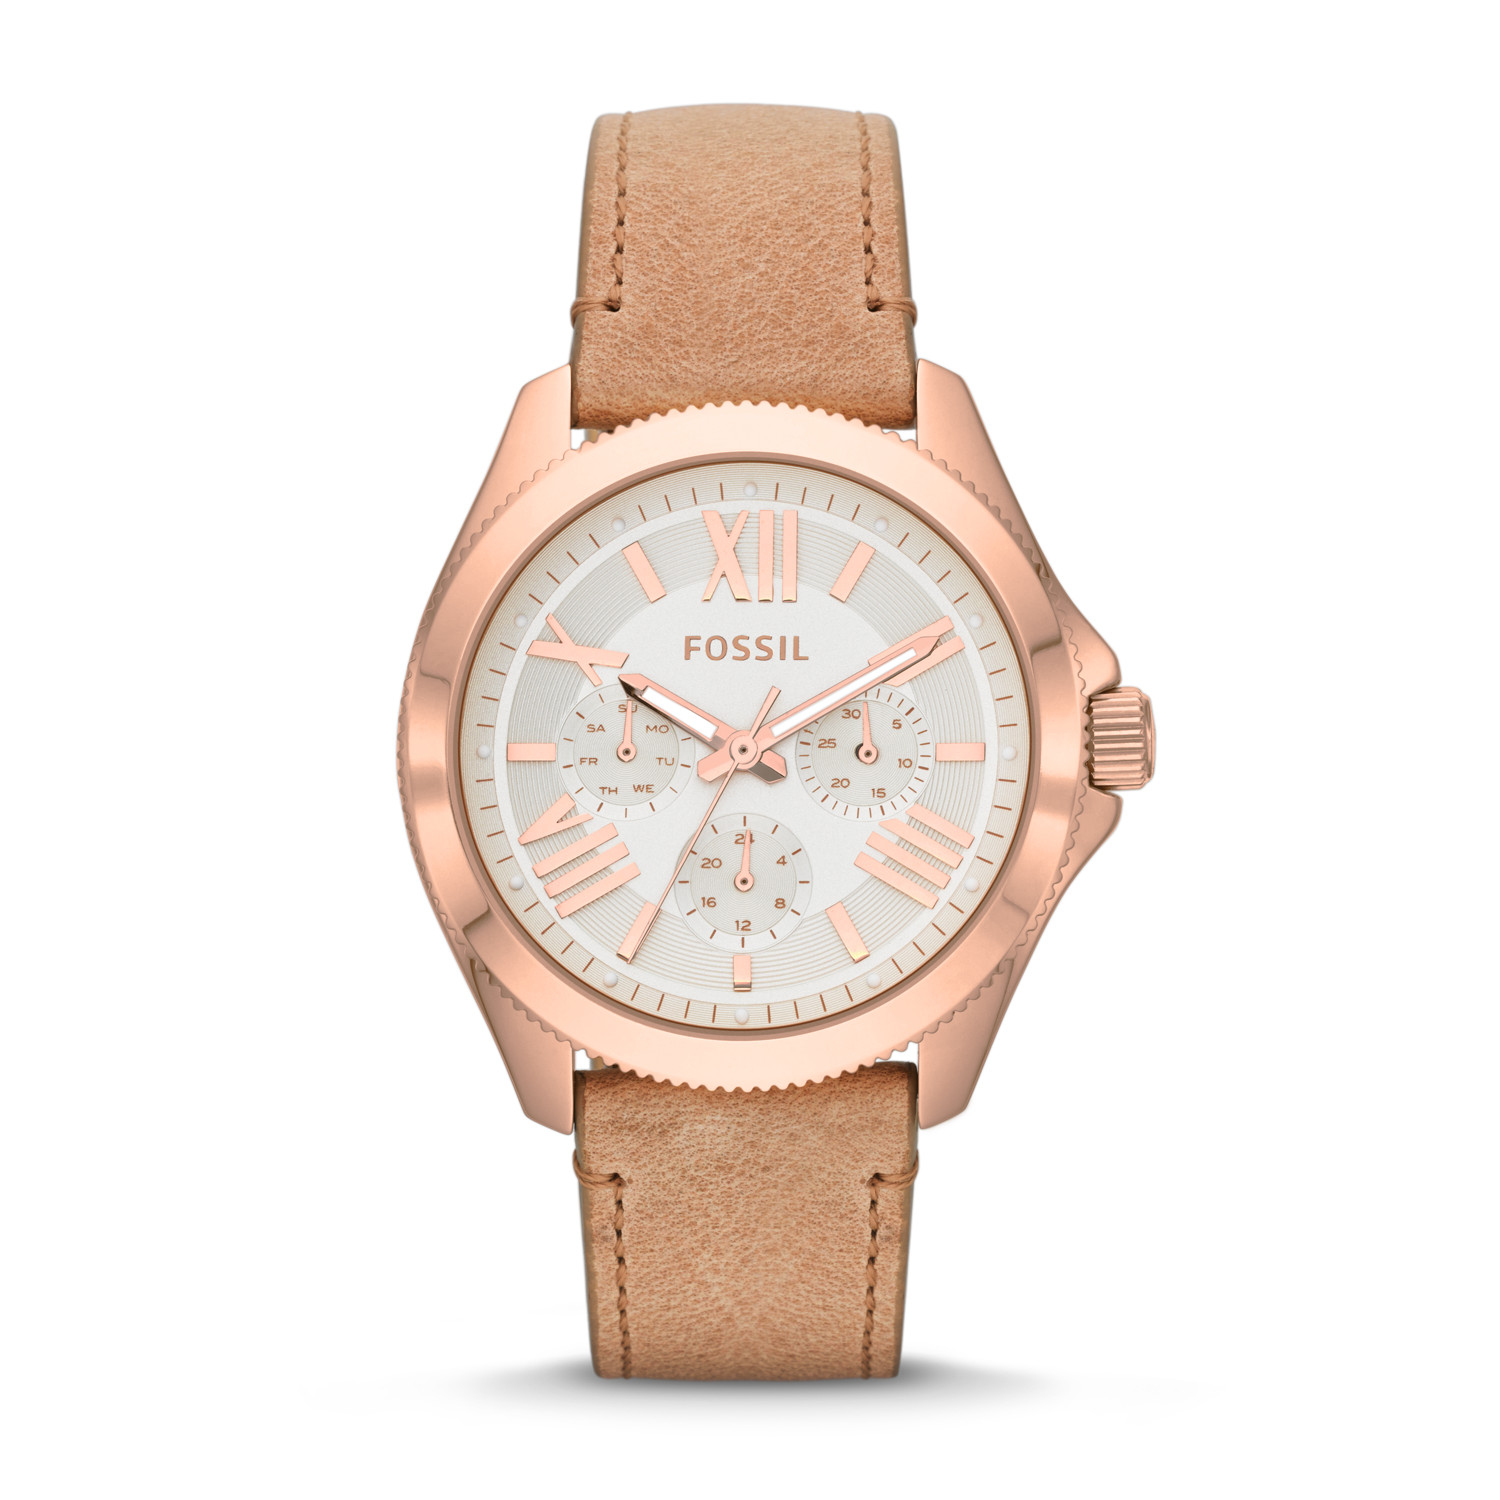 watch aemresponsive sand en micah hand lblaltimage leather watches fossil three pdpzoom us products sku